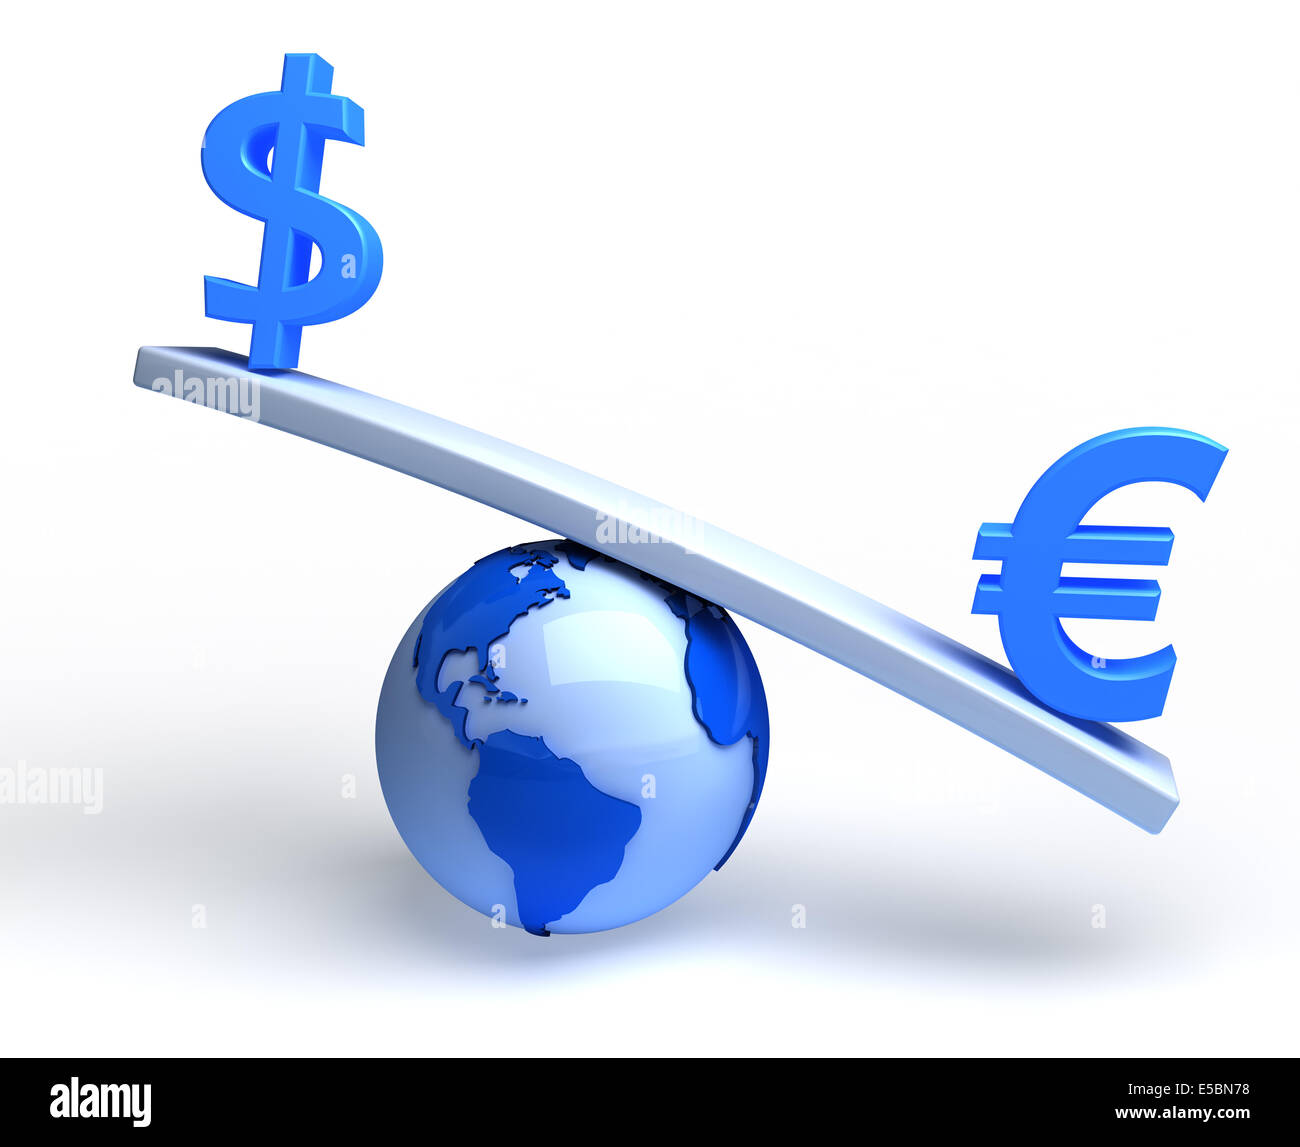 Dollar and euro on global teeterboard. Conceptual illustration - Stock Image